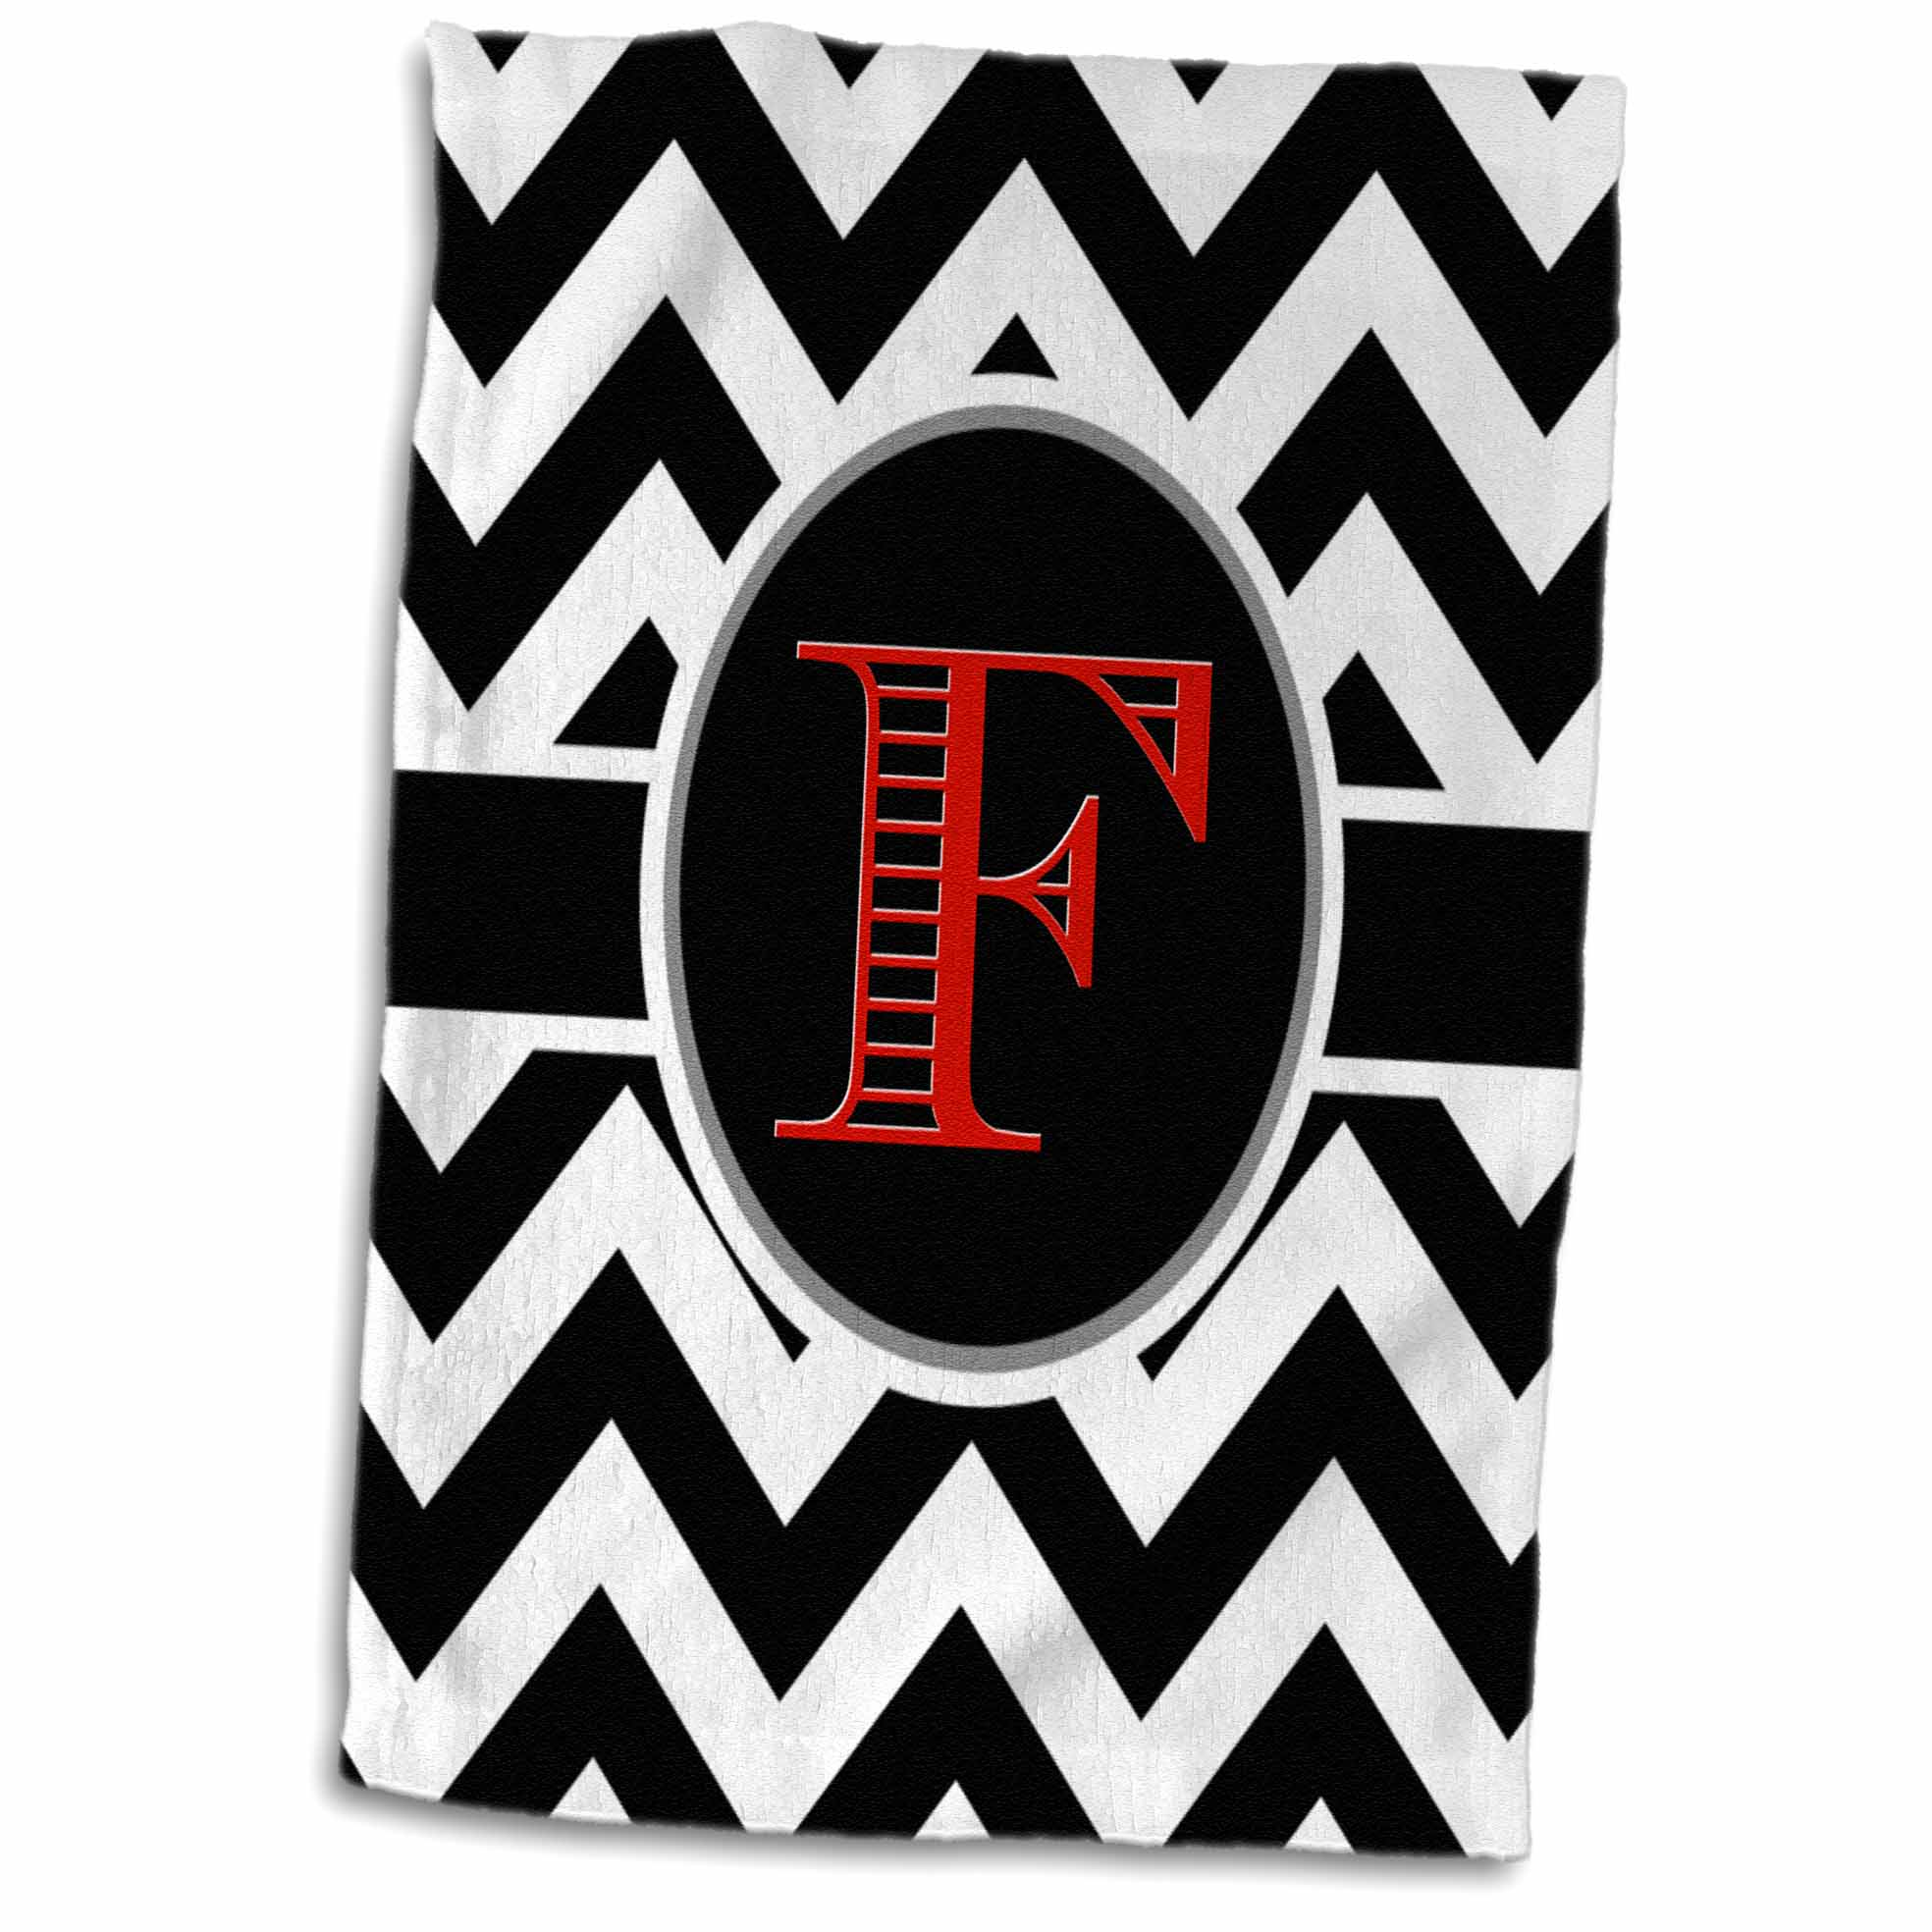 3dRose Black and white chevron monogram red initial F - Towel, 15 by 22-inch